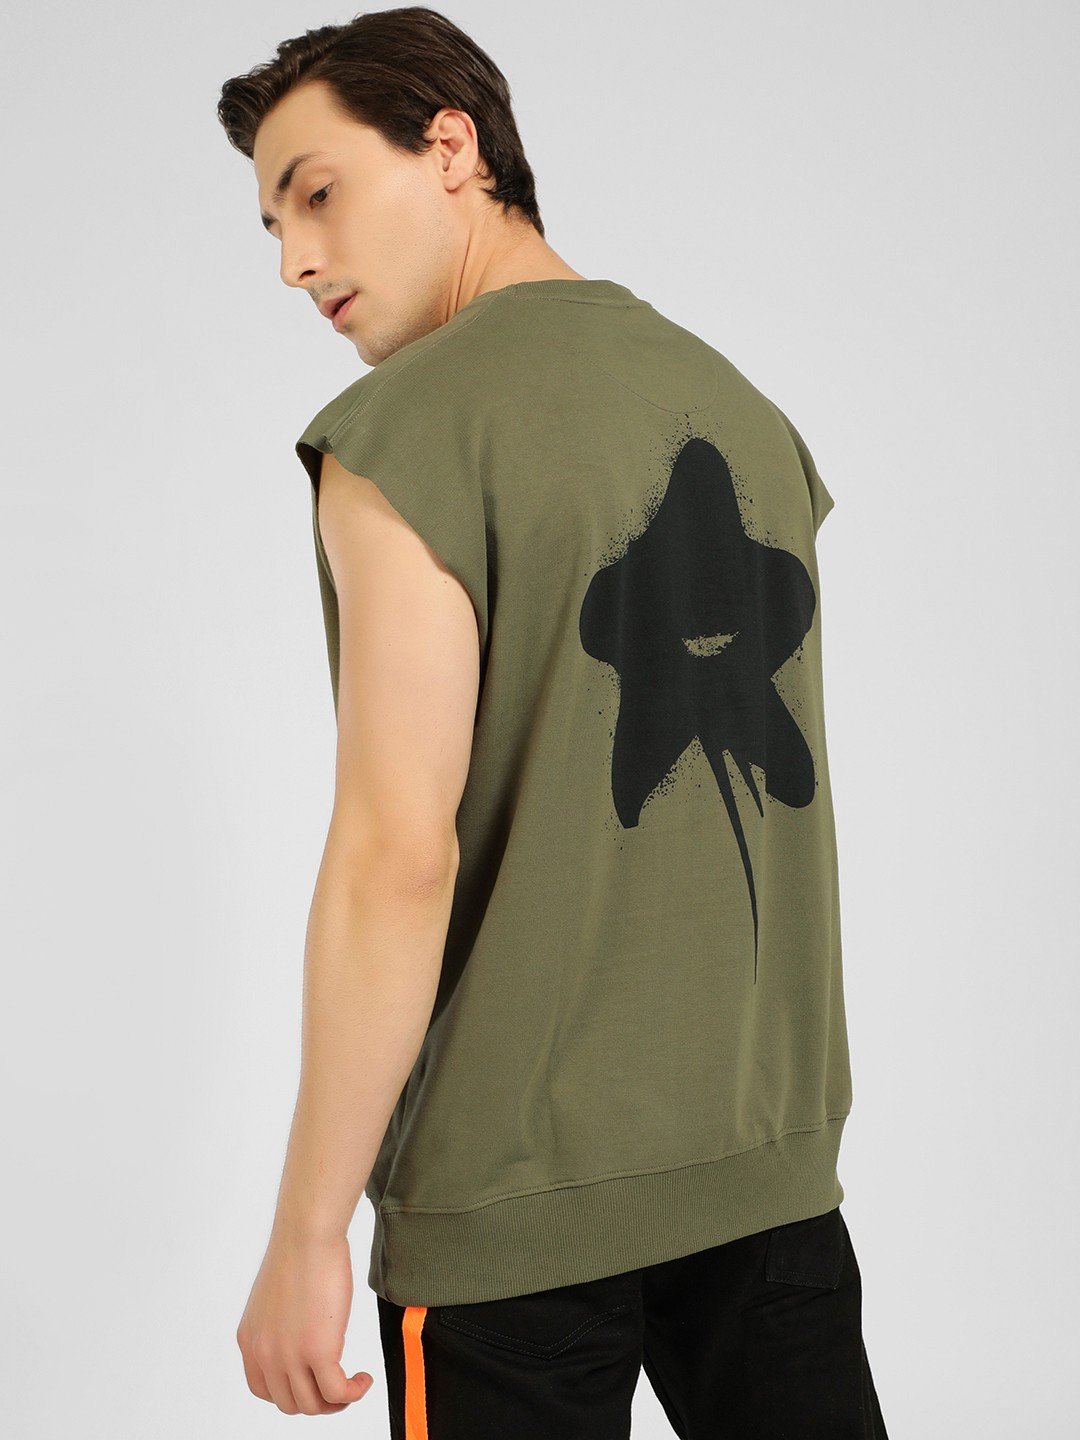 SKULT By Shahid Kapoor Green Cap Sleeve Back Print T-Shirt 1